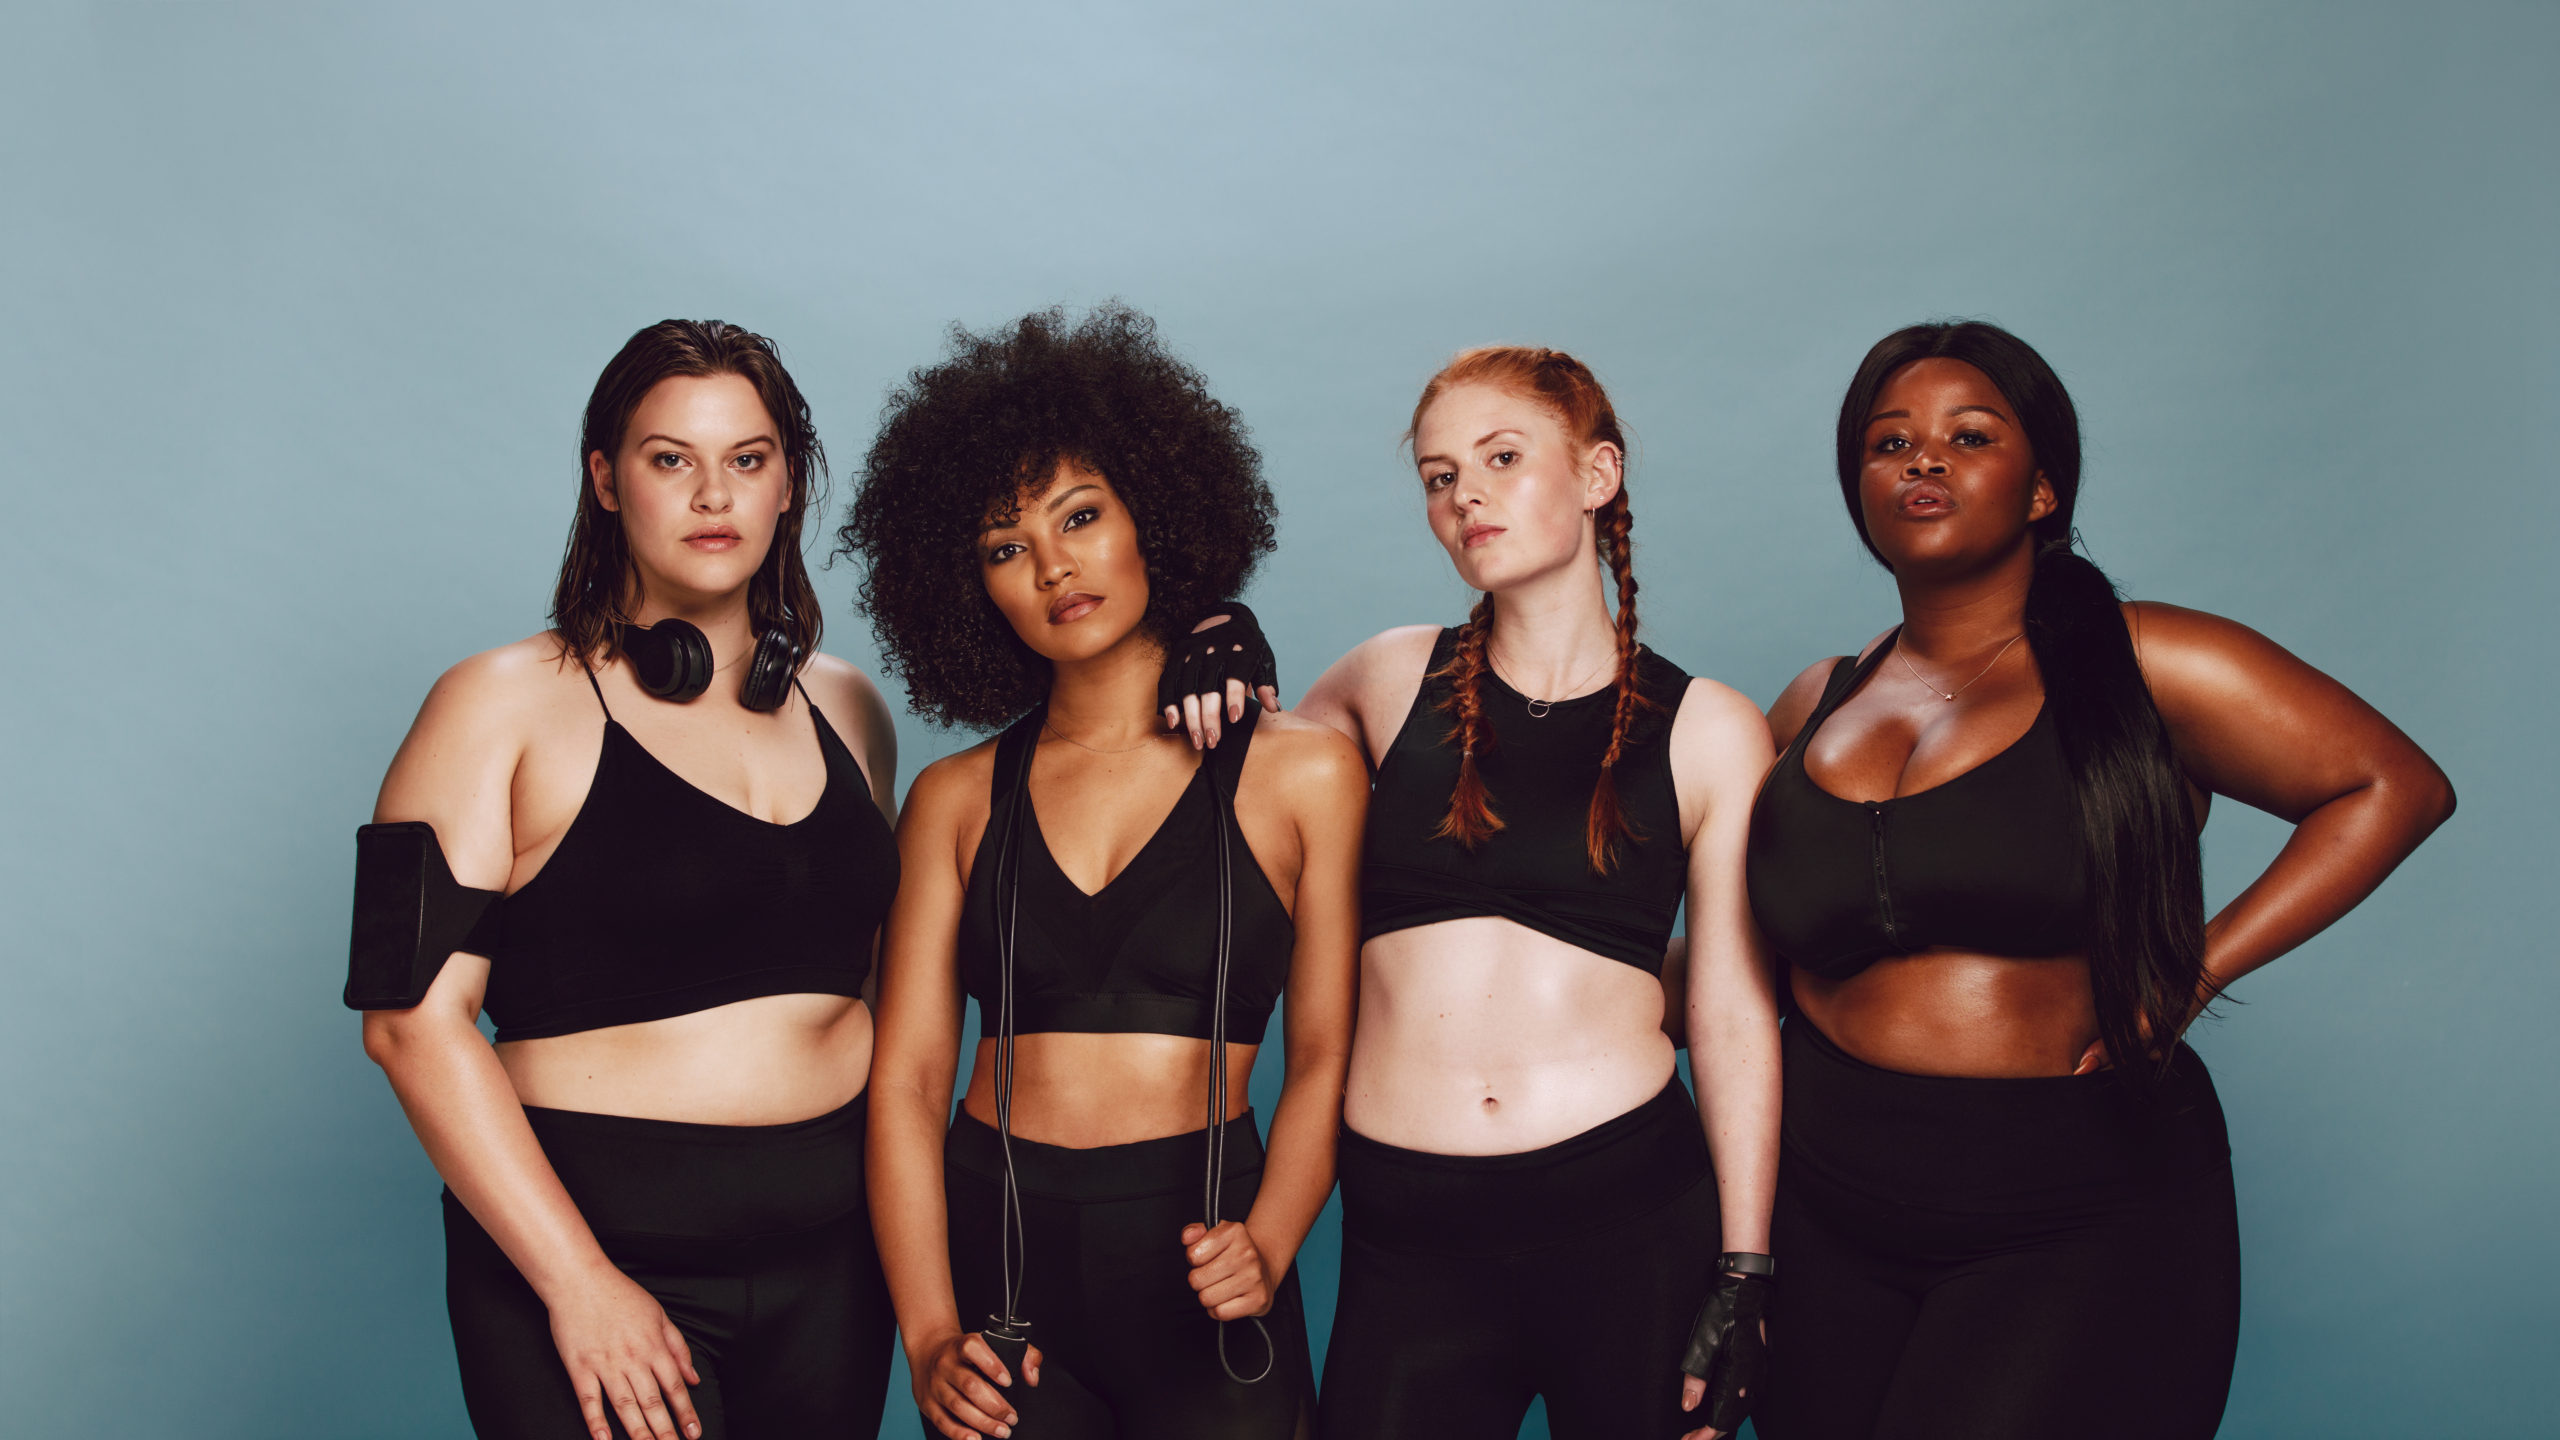 Group of women with different weights in sportswear